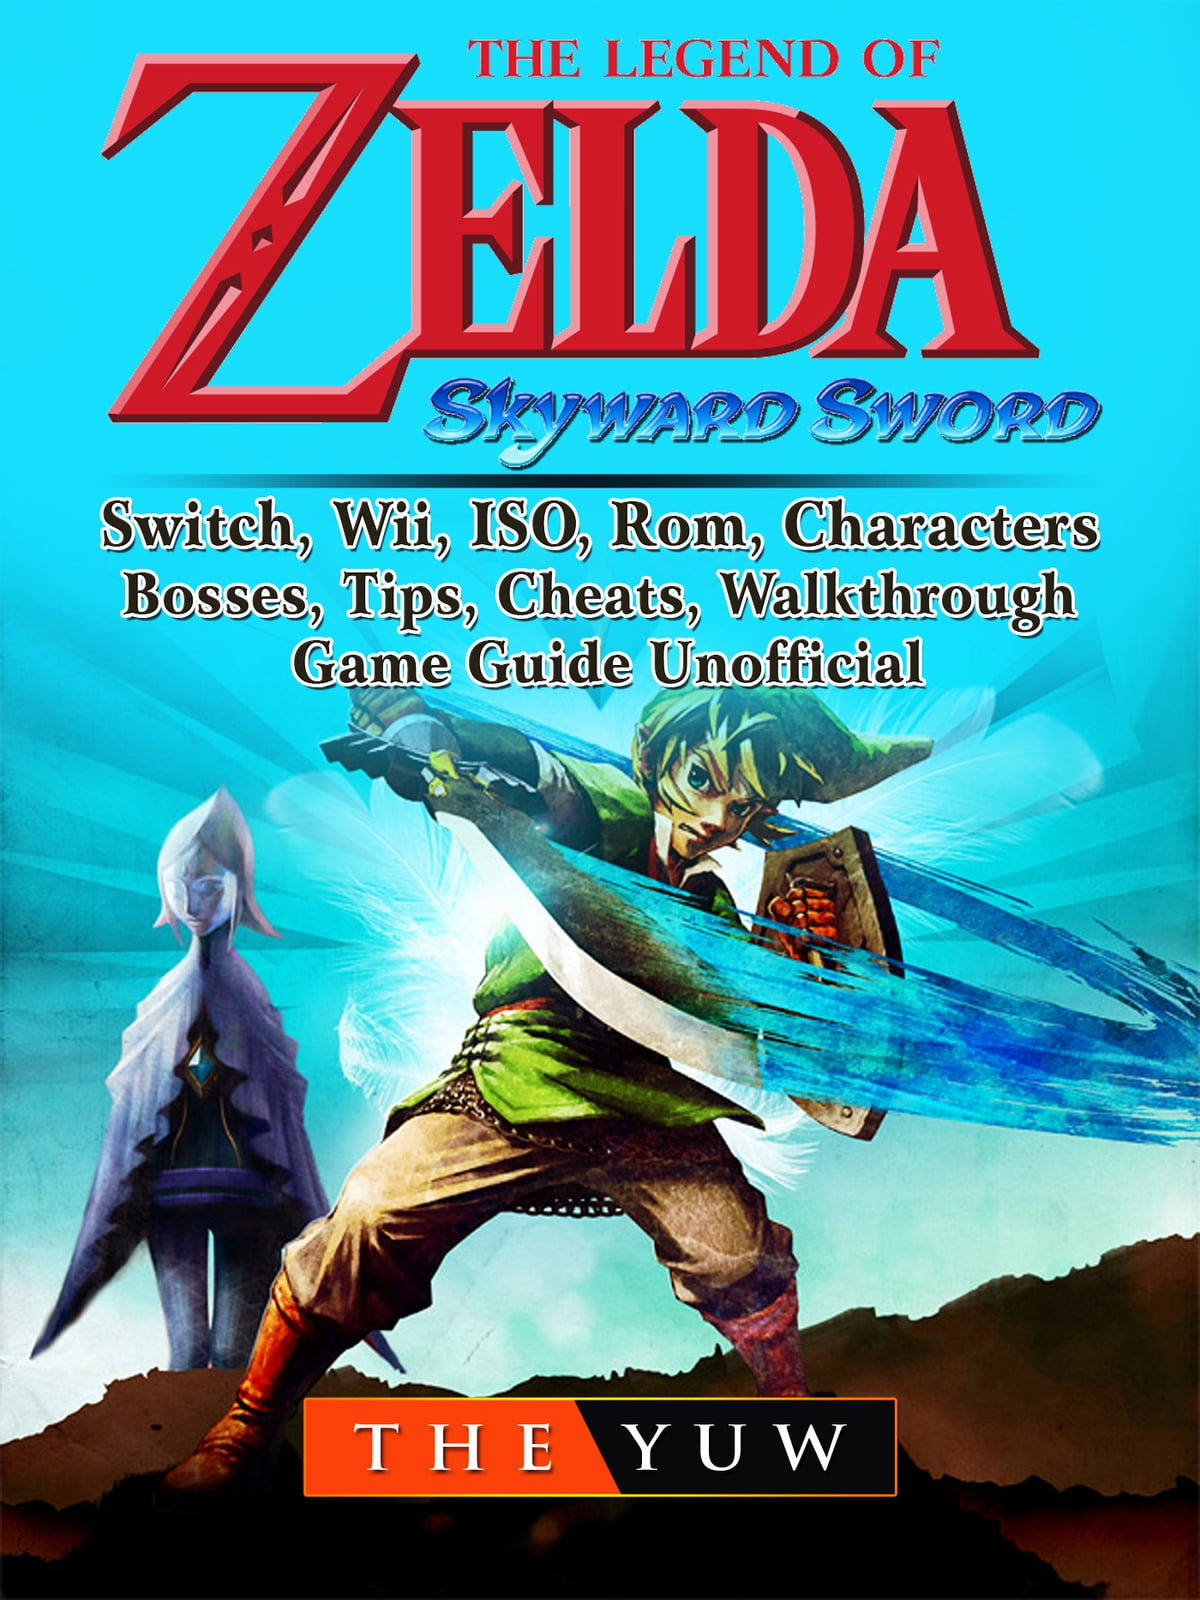 The Legend of Zelda Skyward Sword, Switch, Wii, ISO, Rom, Characters,  Bosses, Tips, Cheats, Walkthrough, Game Guide Unofficial ebook by The Yuw -